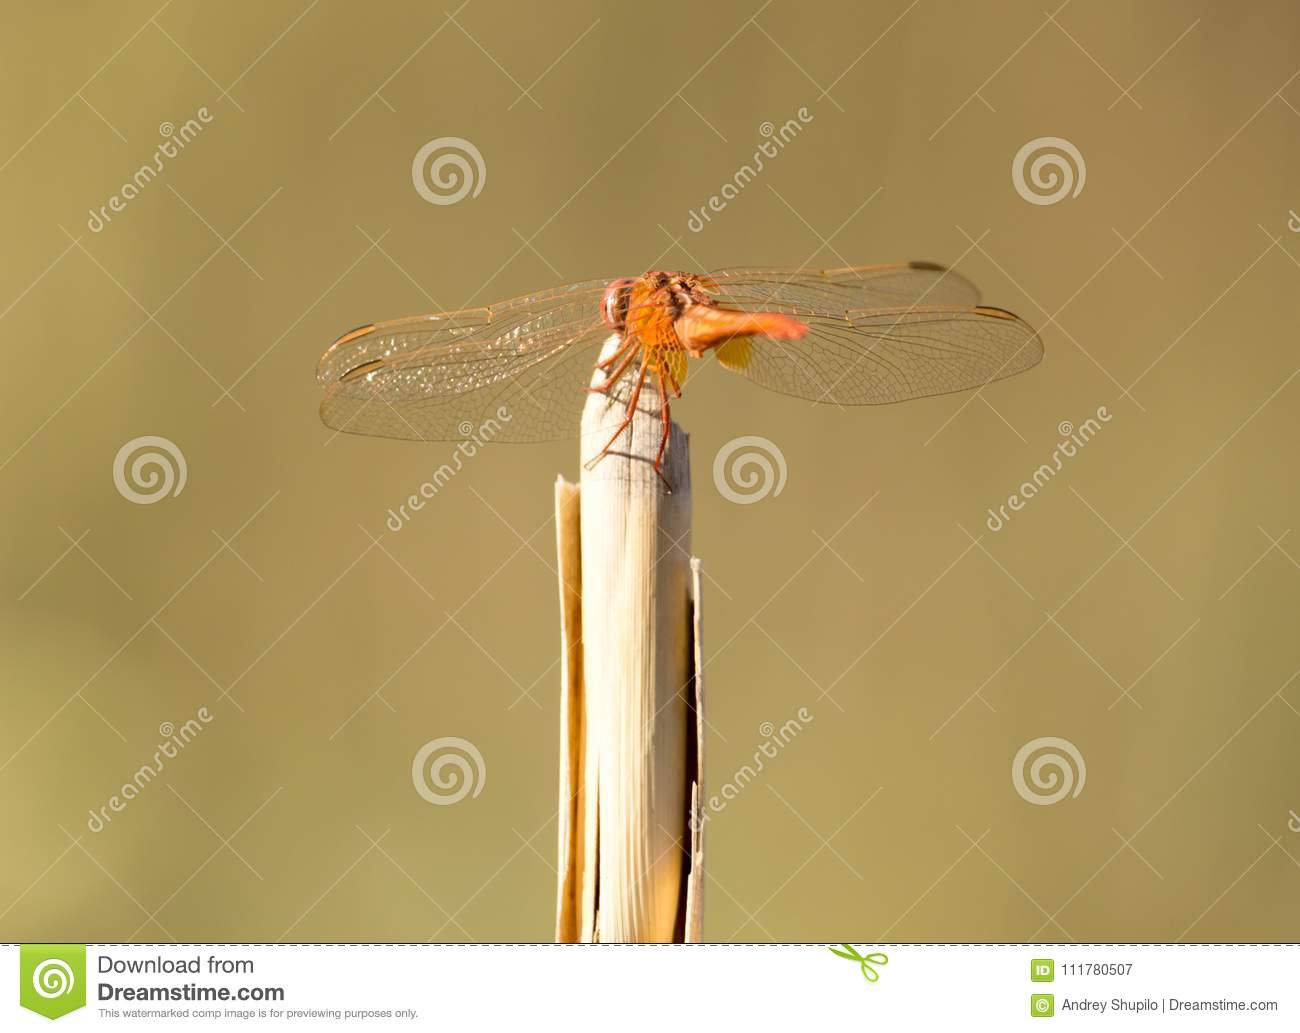 Dragonfly on a stick outdoors